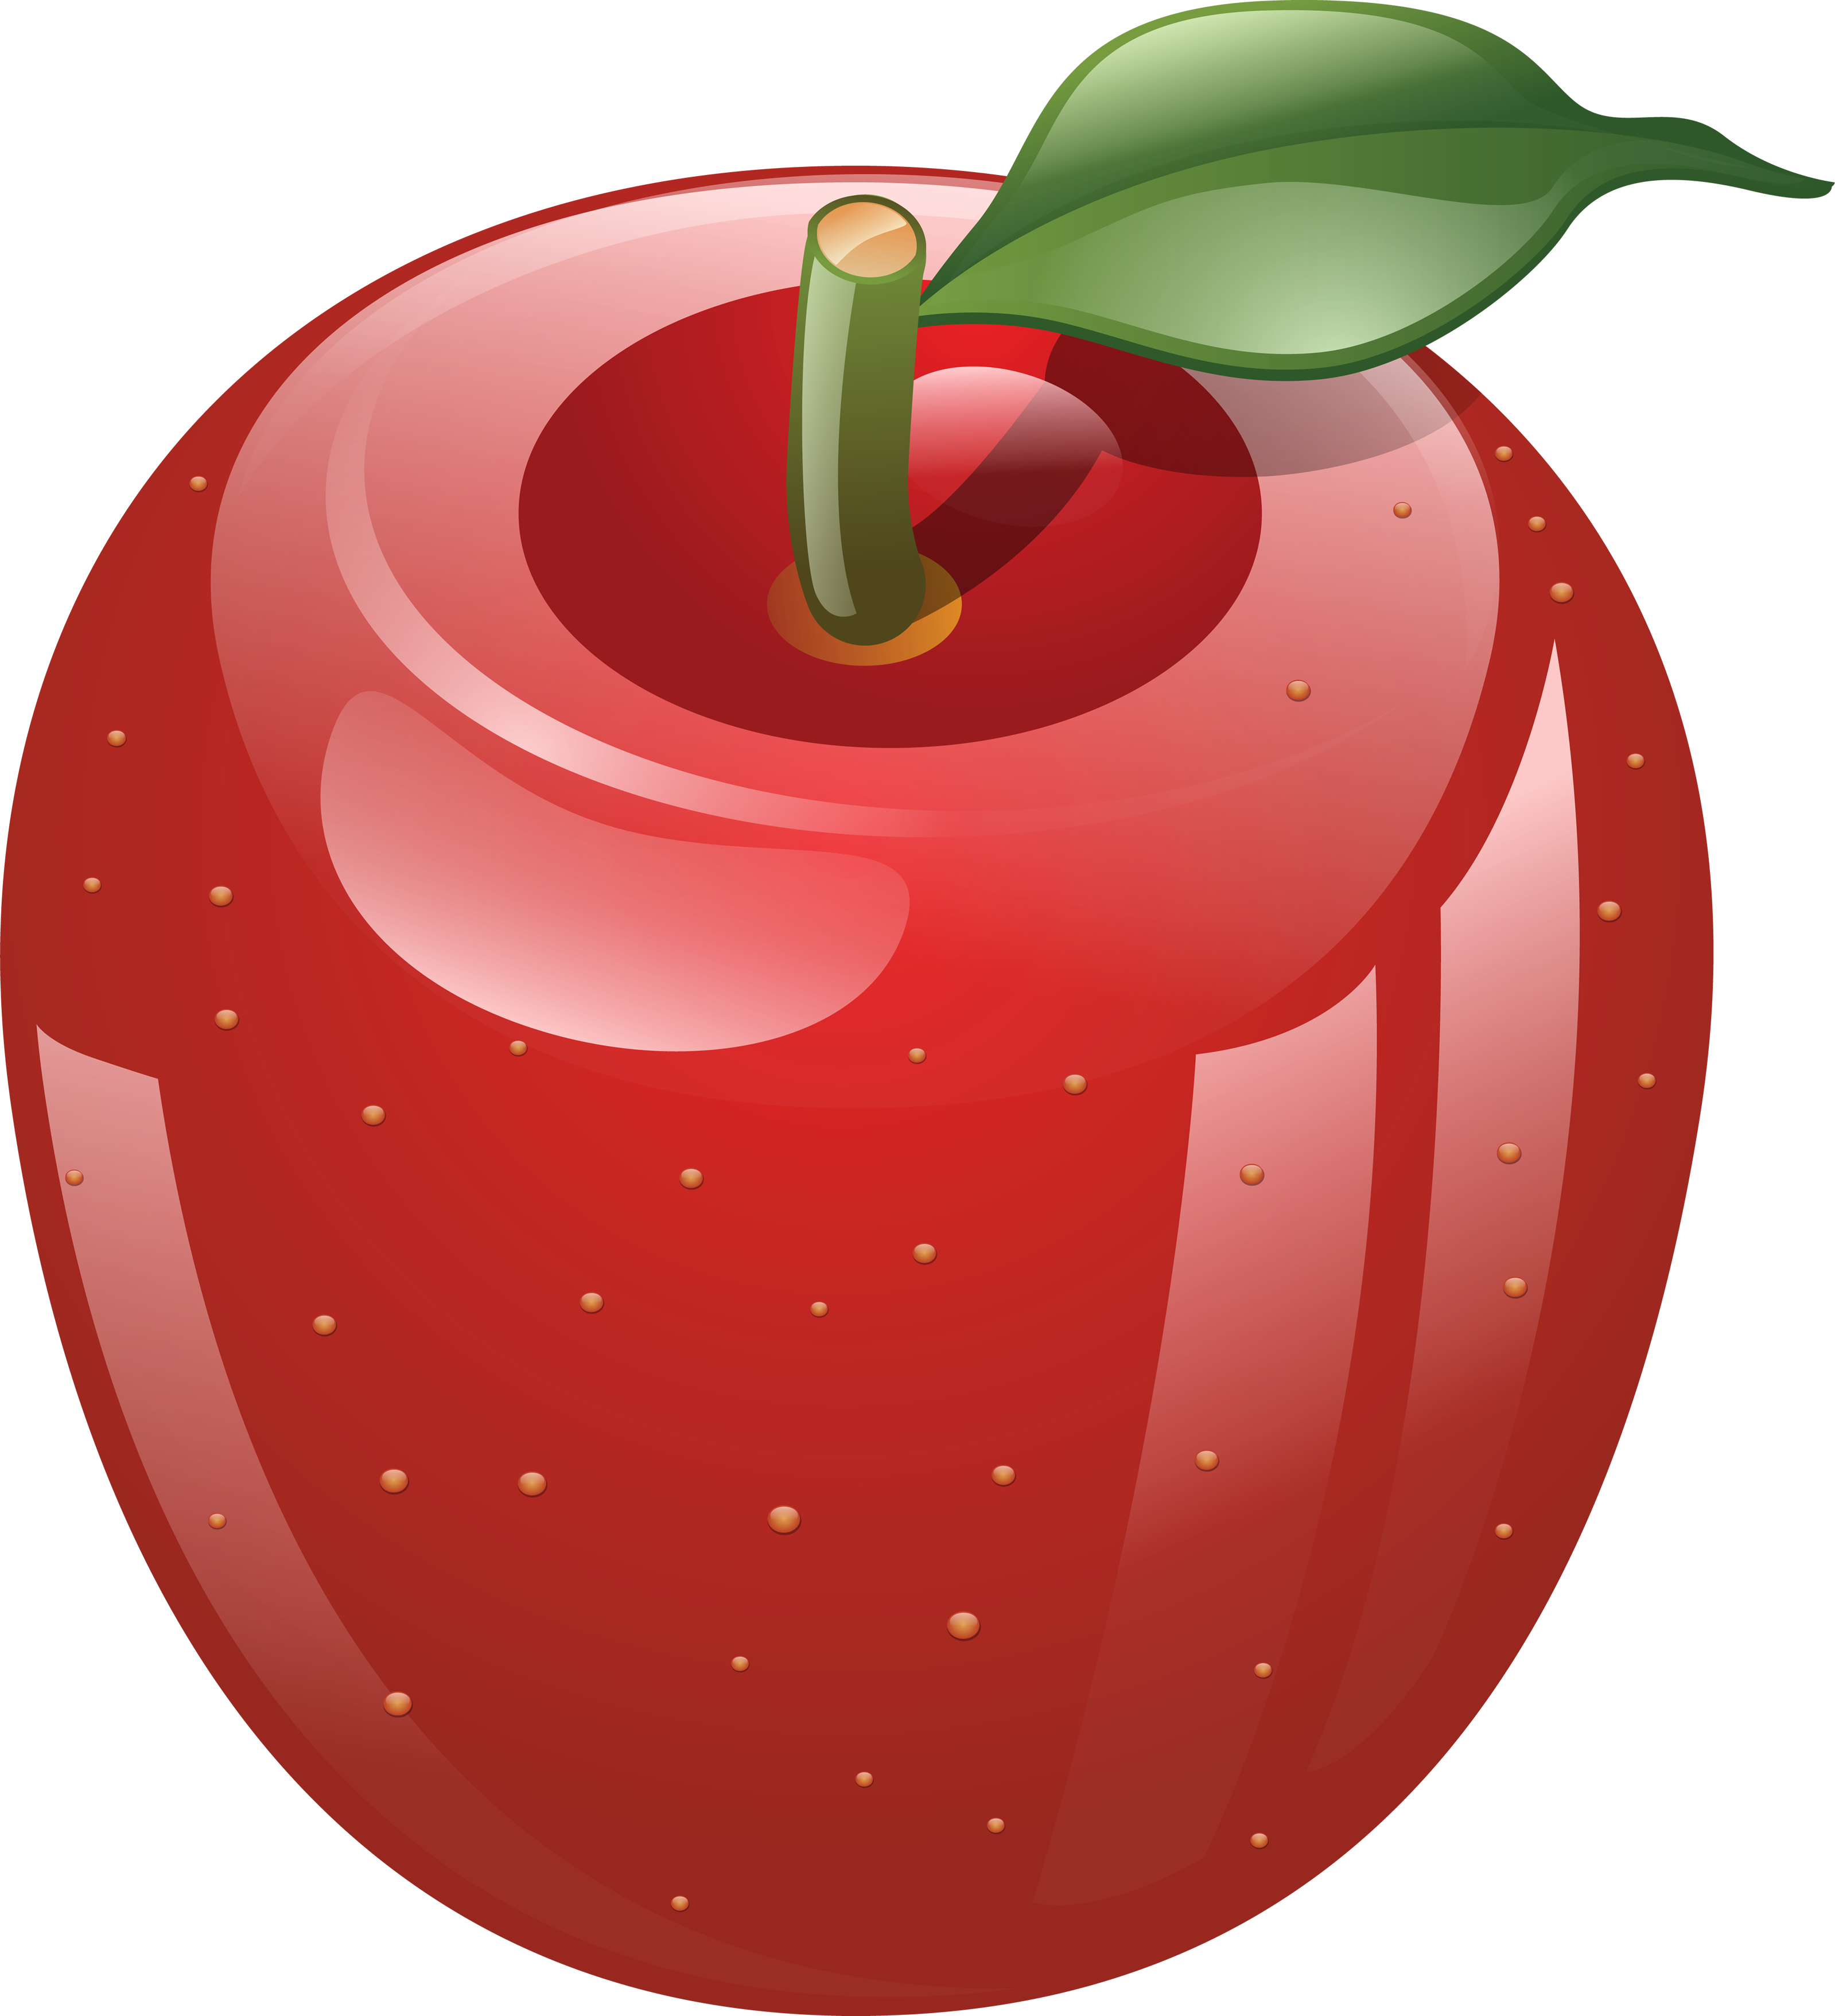 image Fruit clipart. Apple smiley free on.